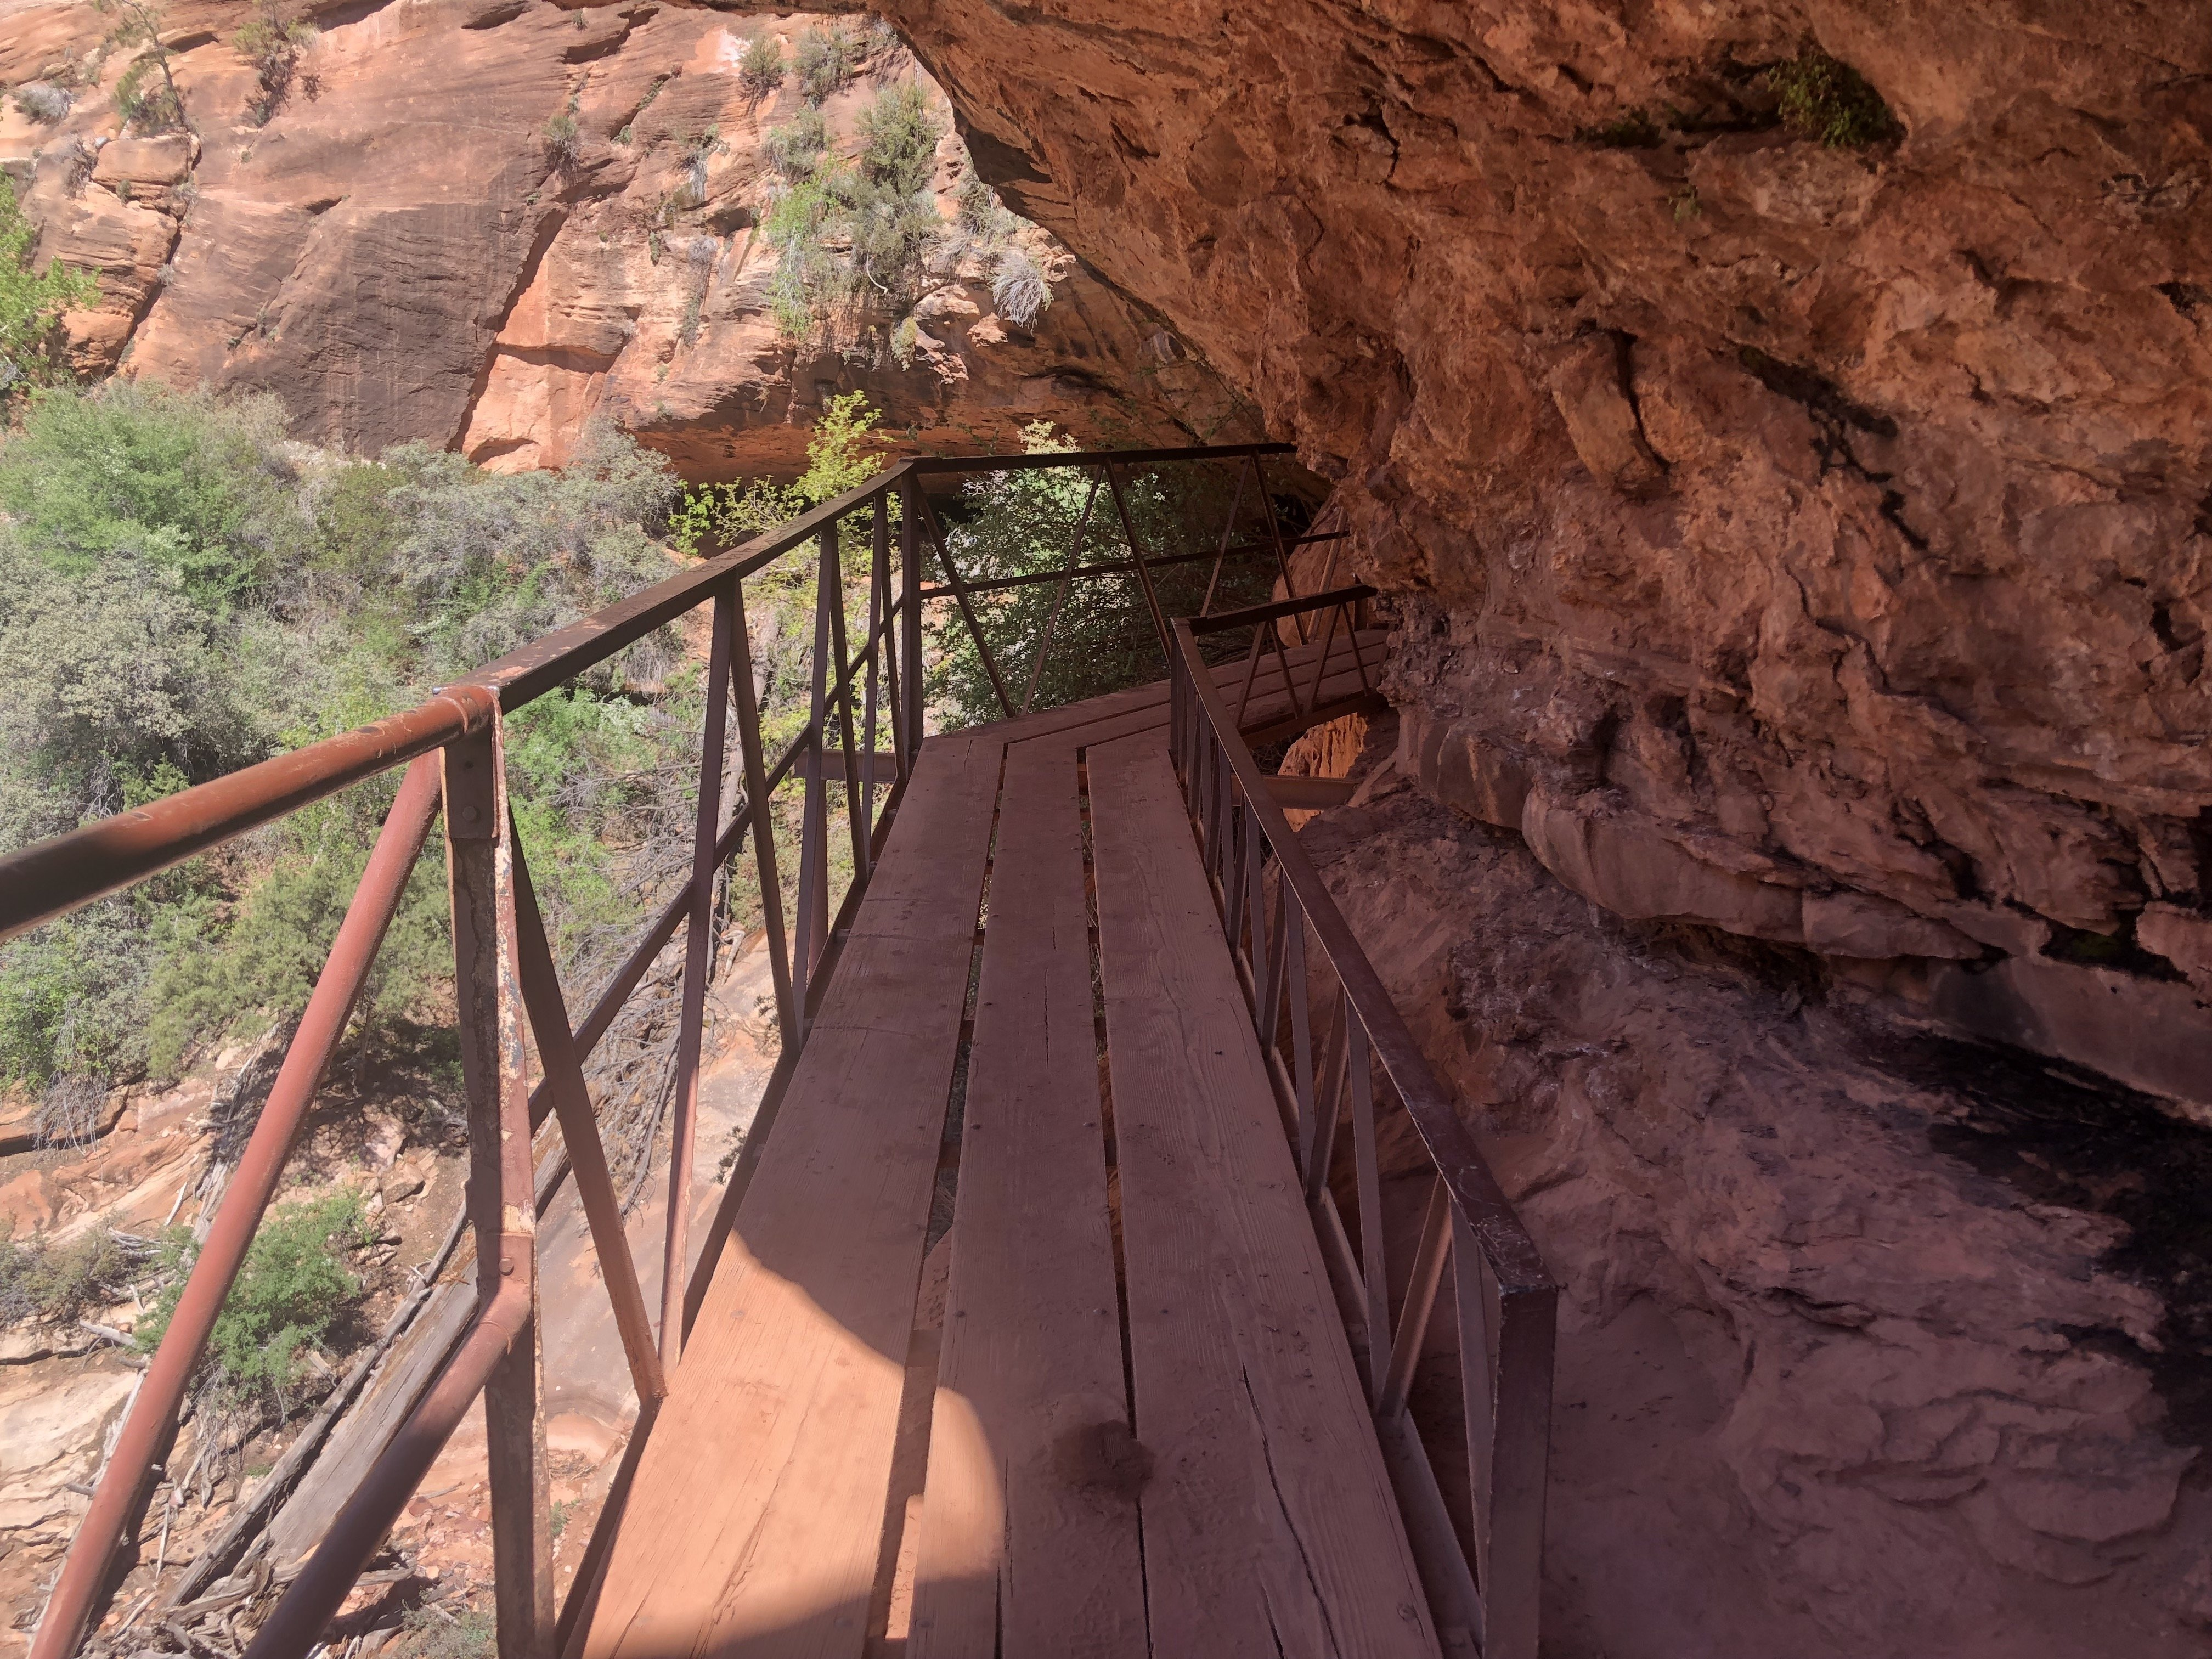 A wooden walkway encountered while hiking Canyon Overlook Trail